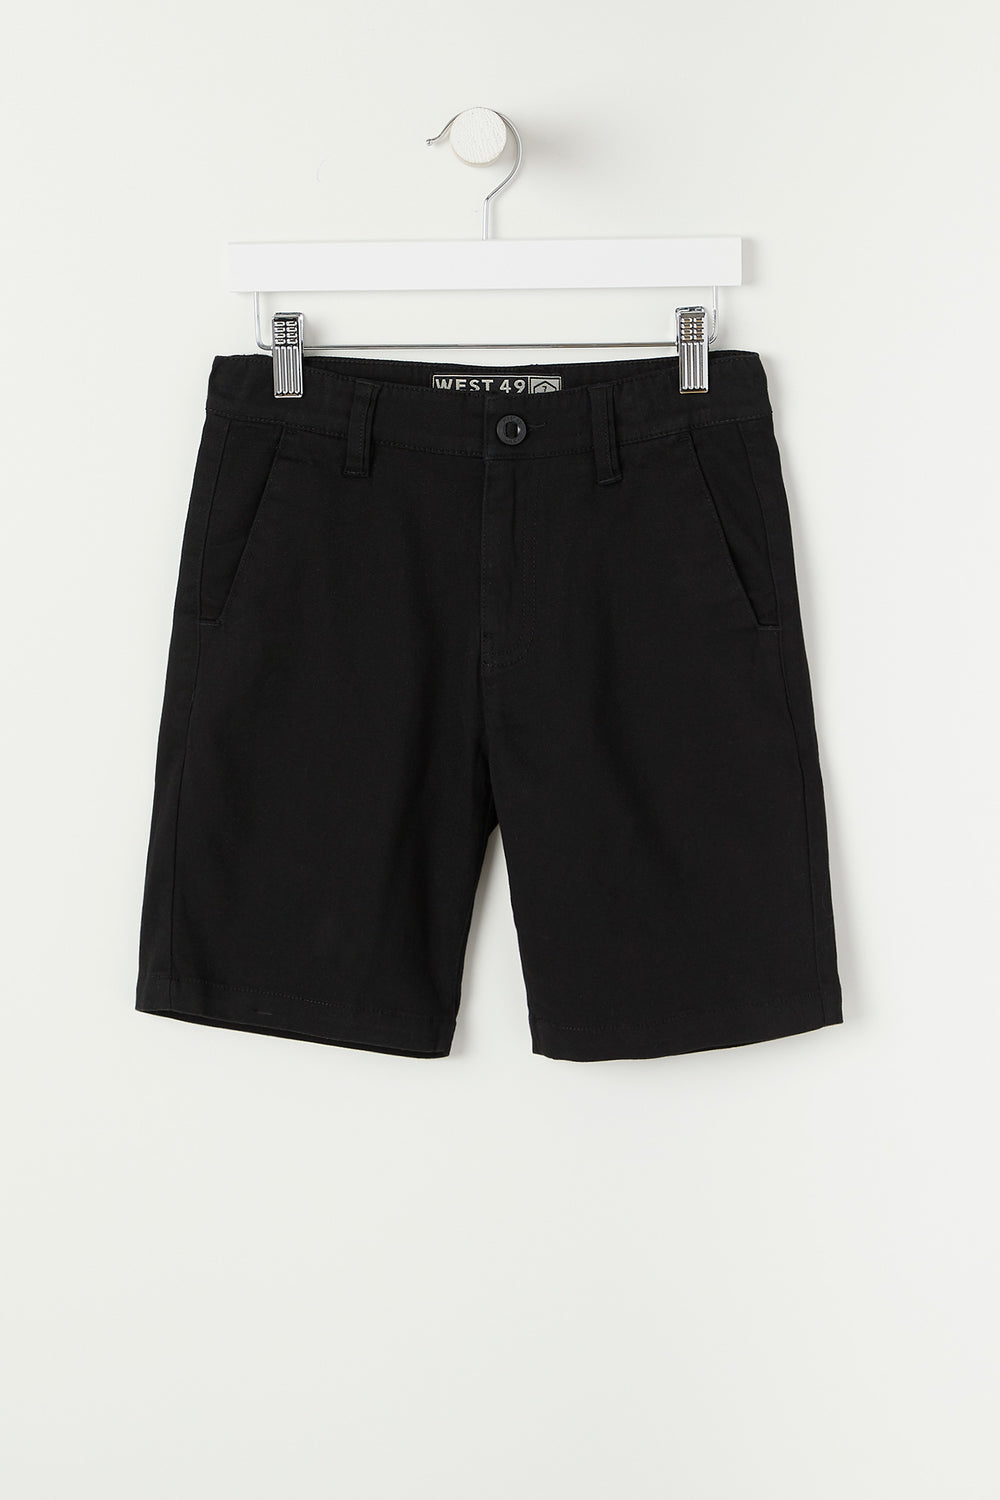 West49 Youth Twill Street Short Black